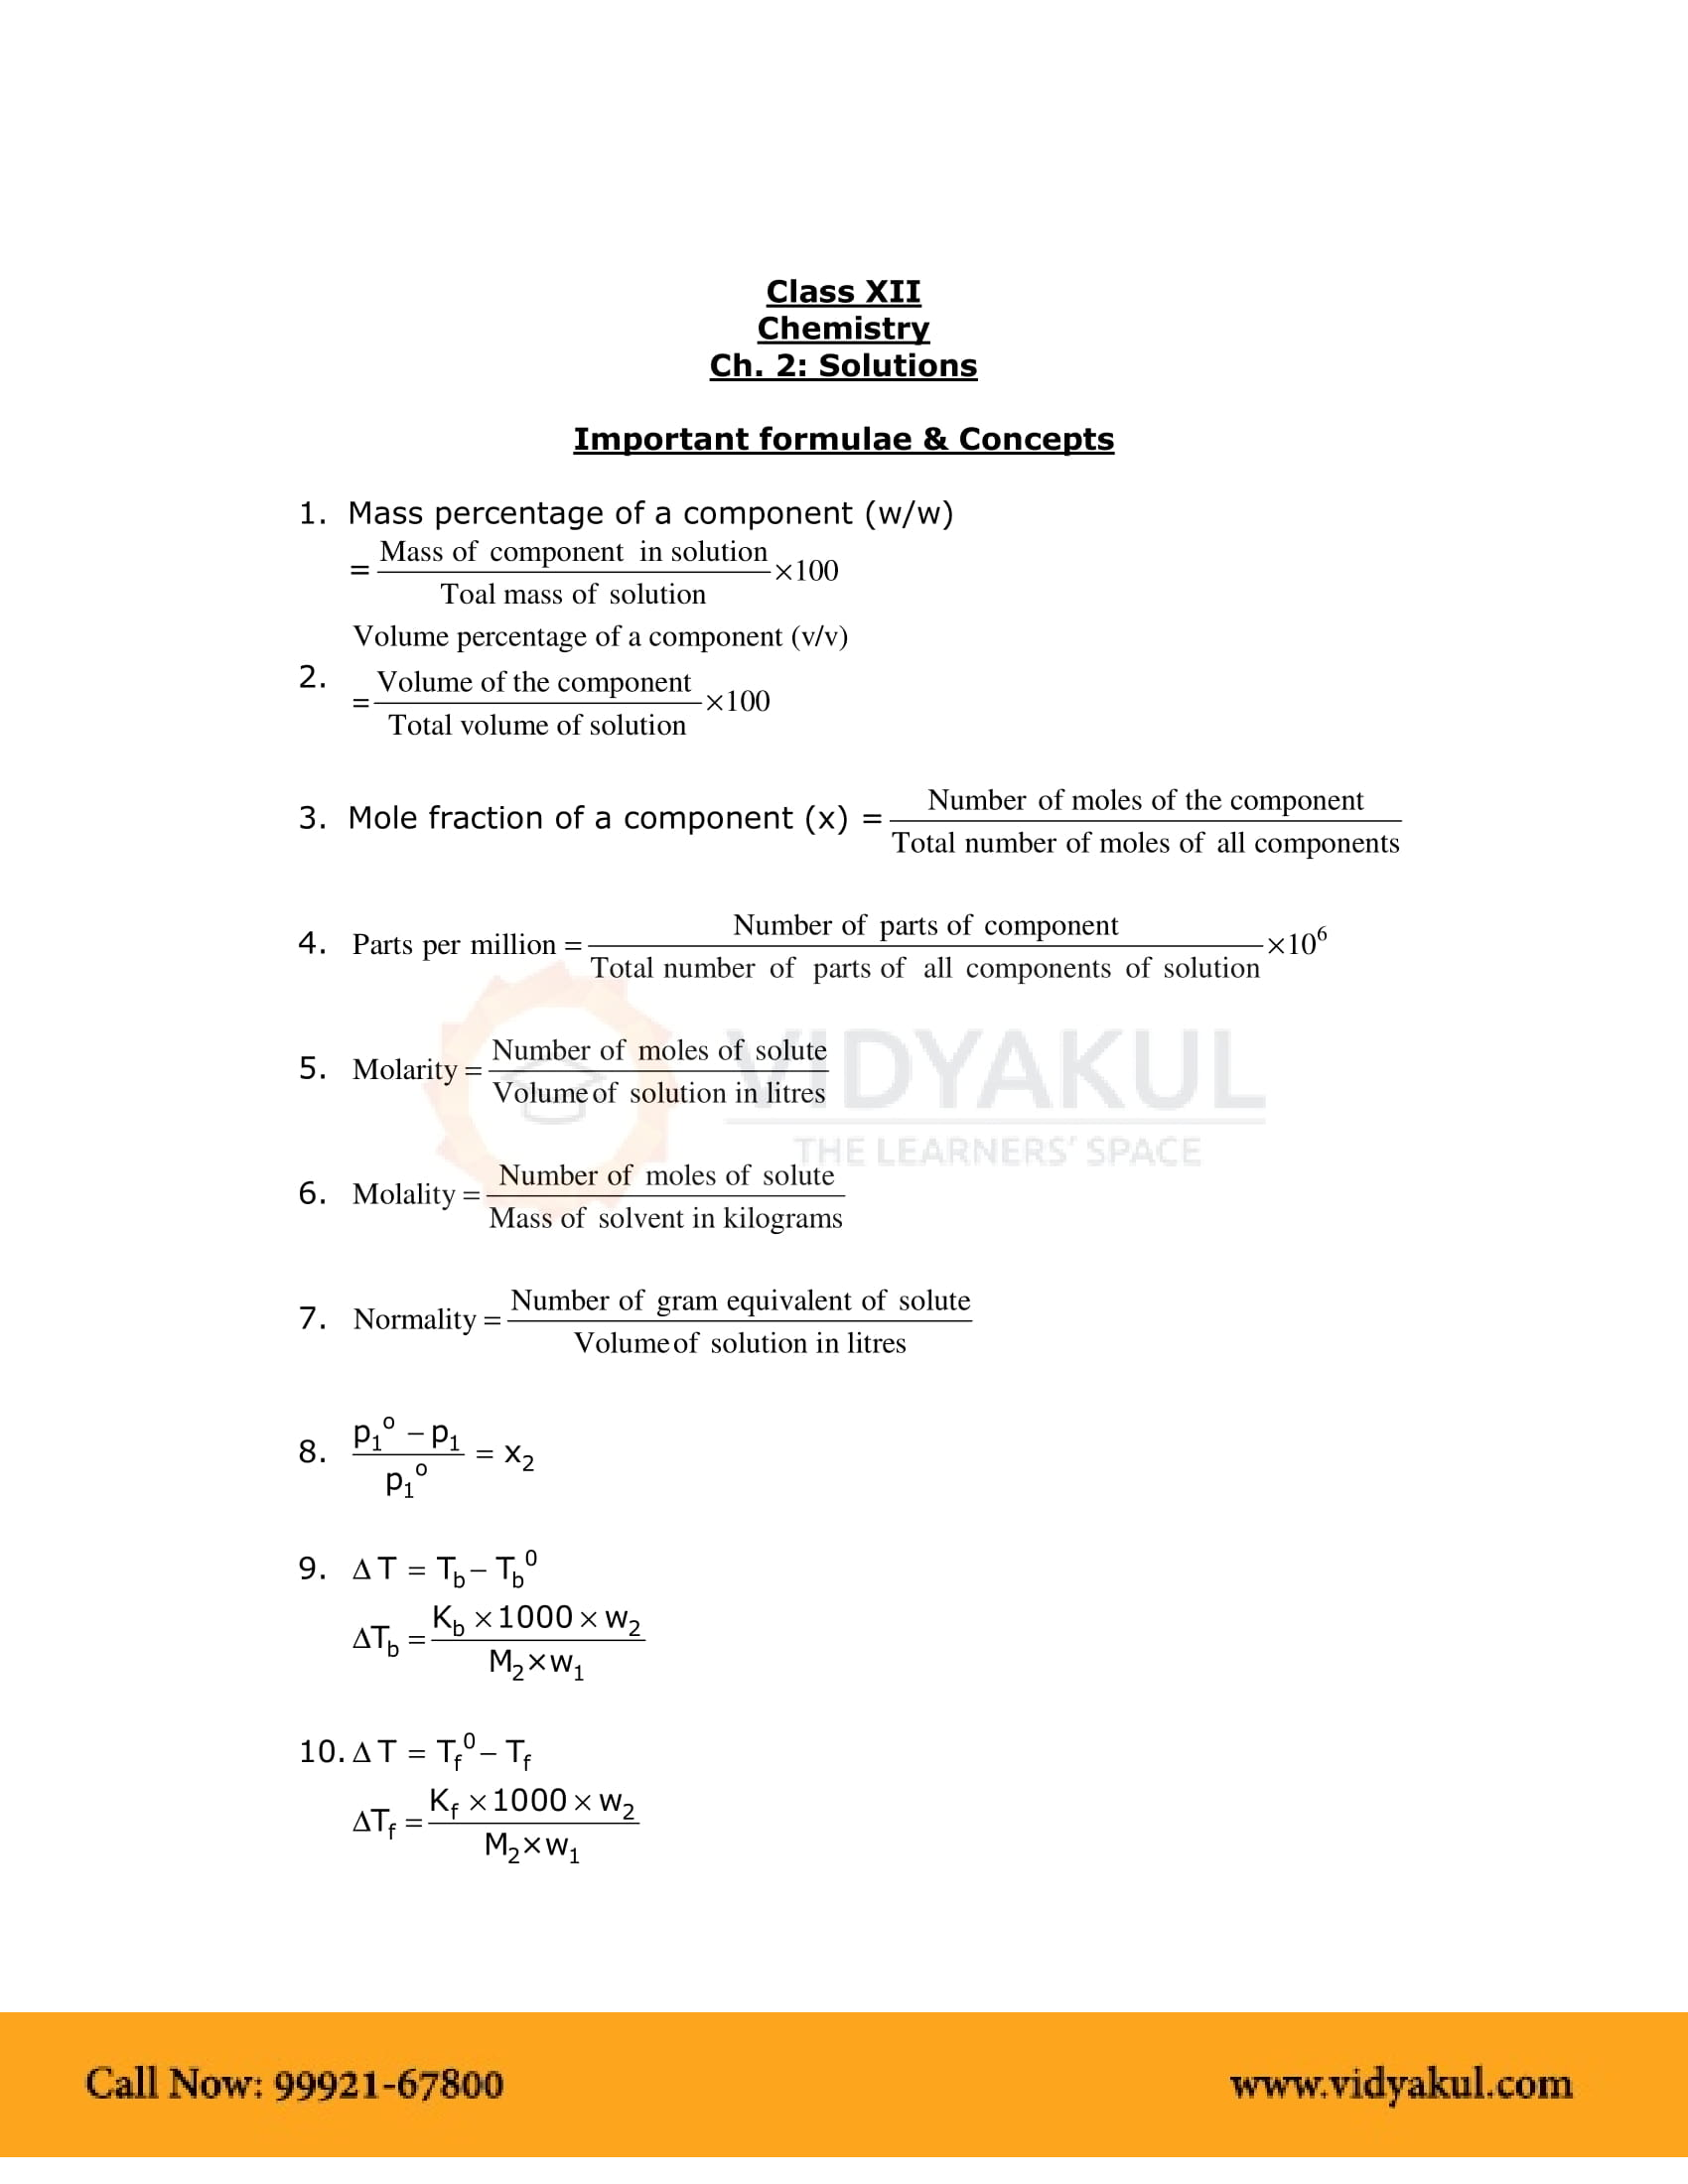 Chemistry Formulas And Concepts Pdf